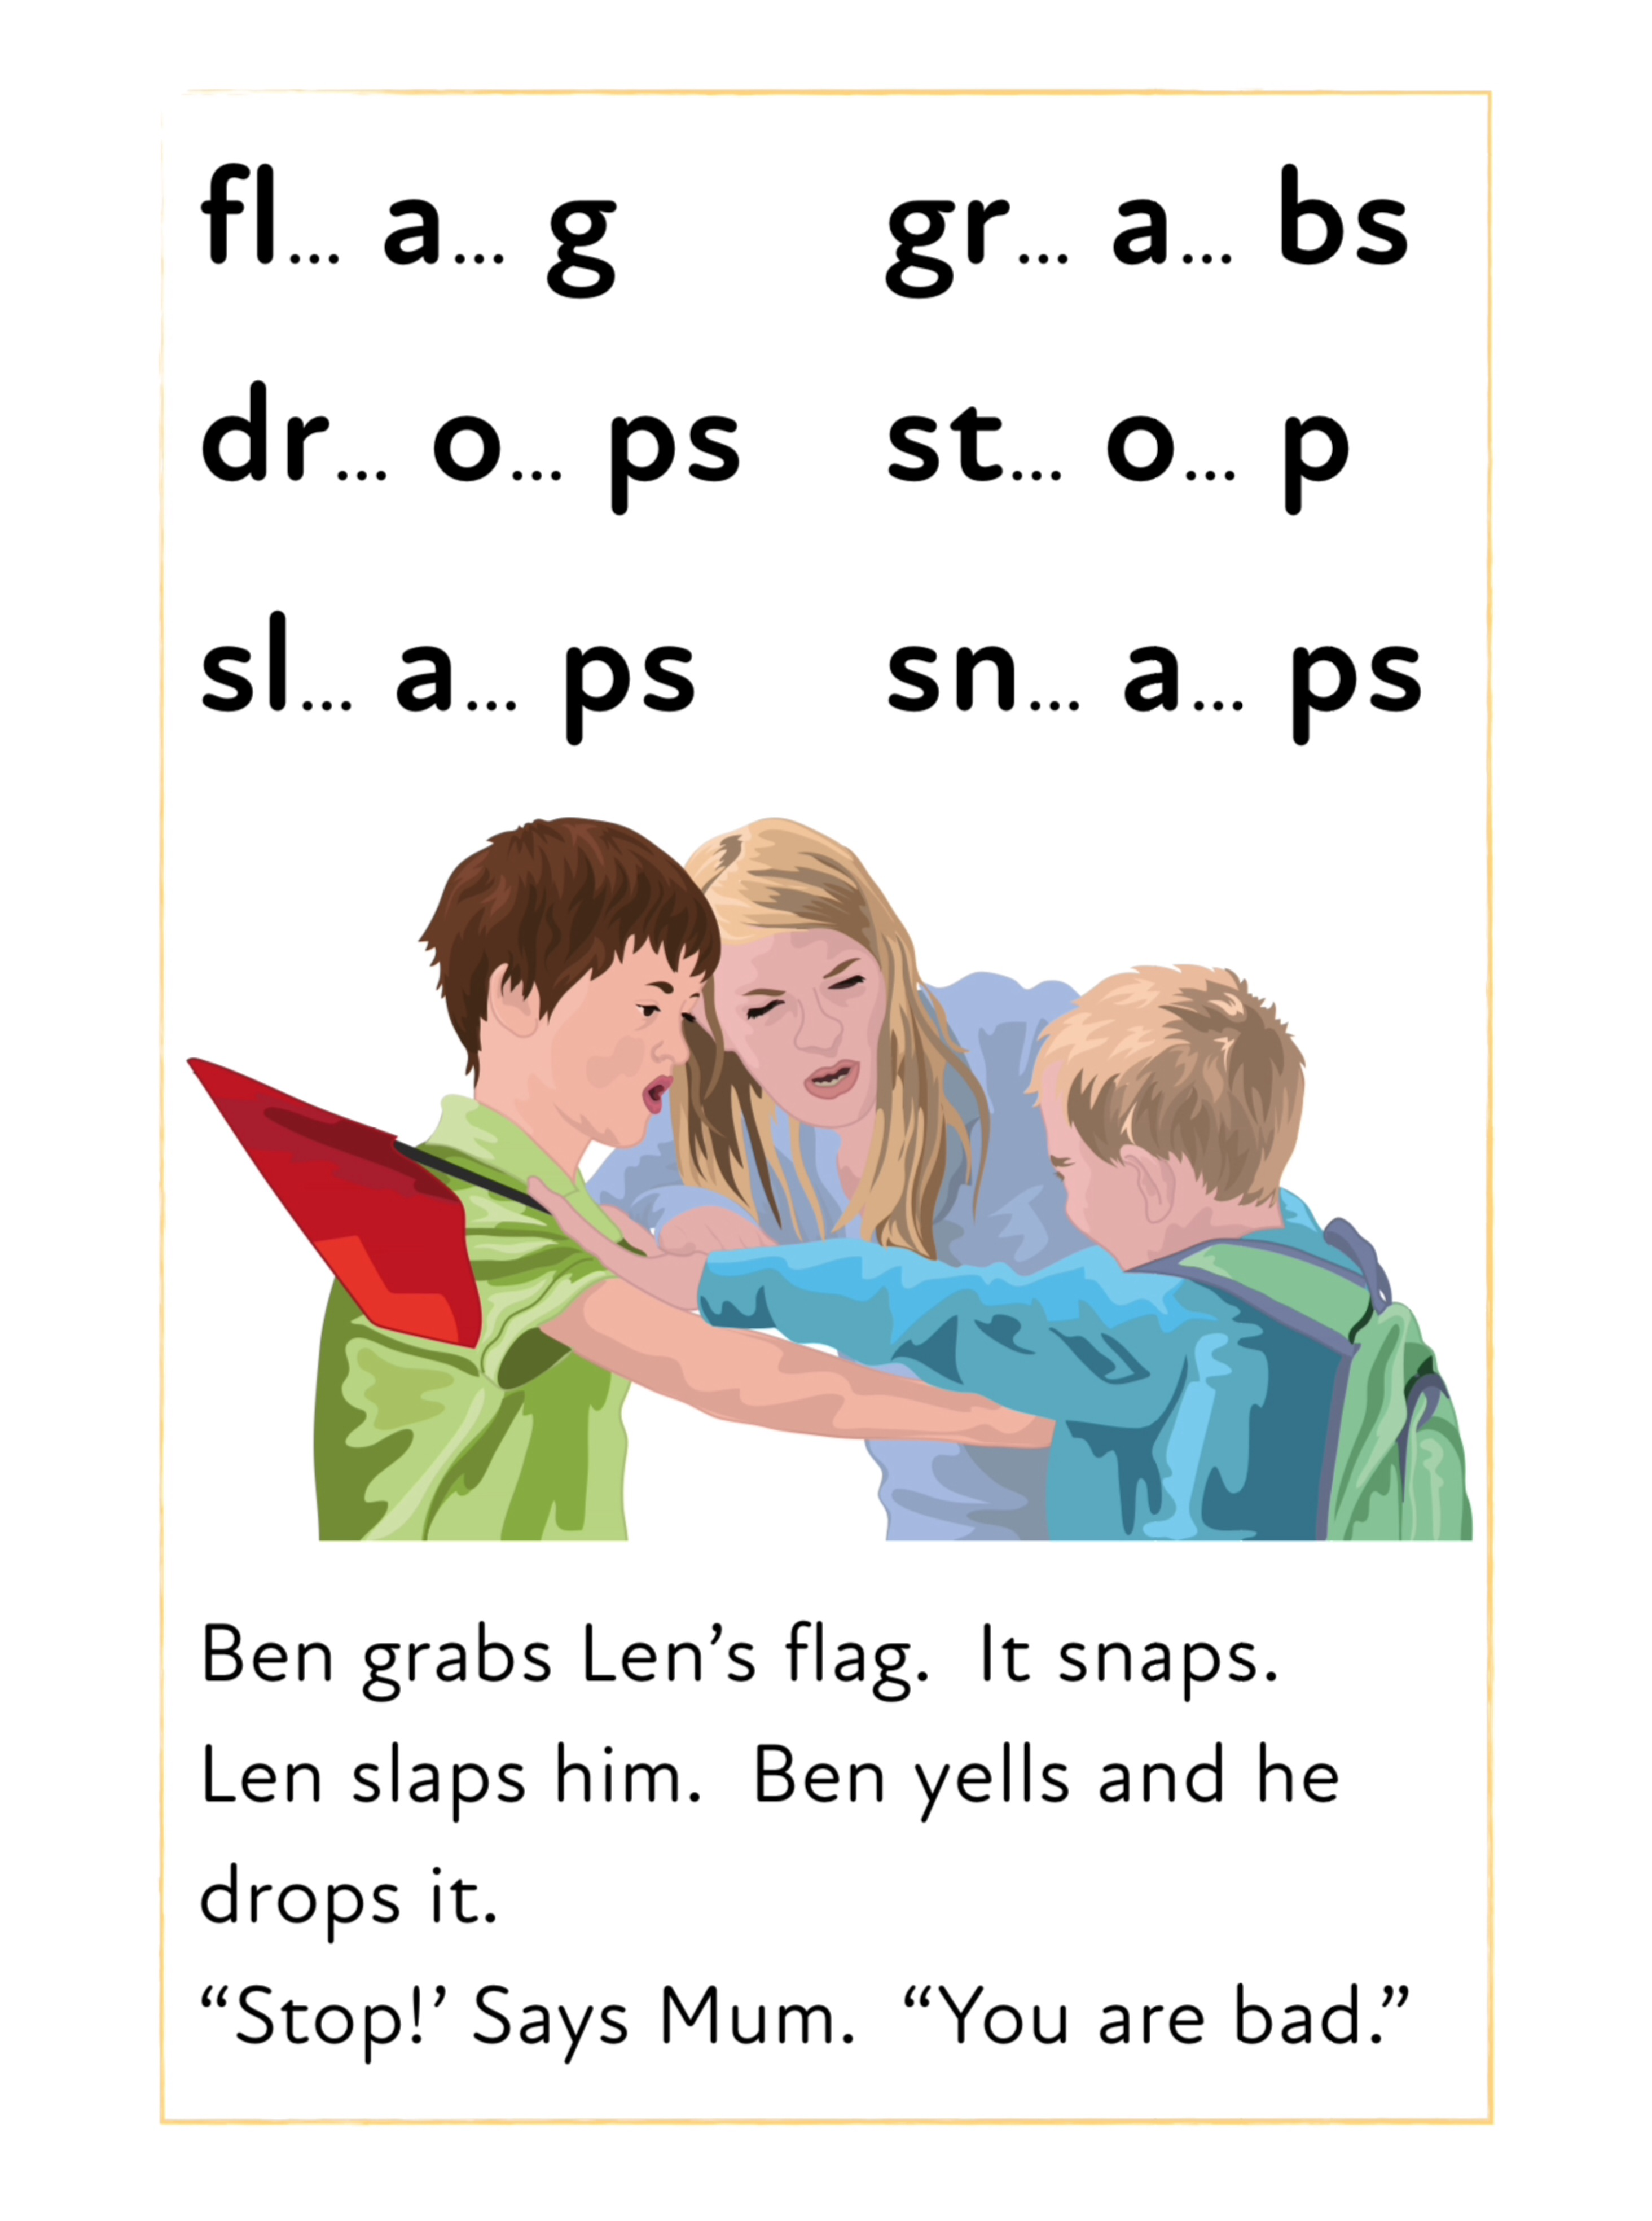 Blend Sounds Together To Make Words With Initial Consonant Blends (3 +)